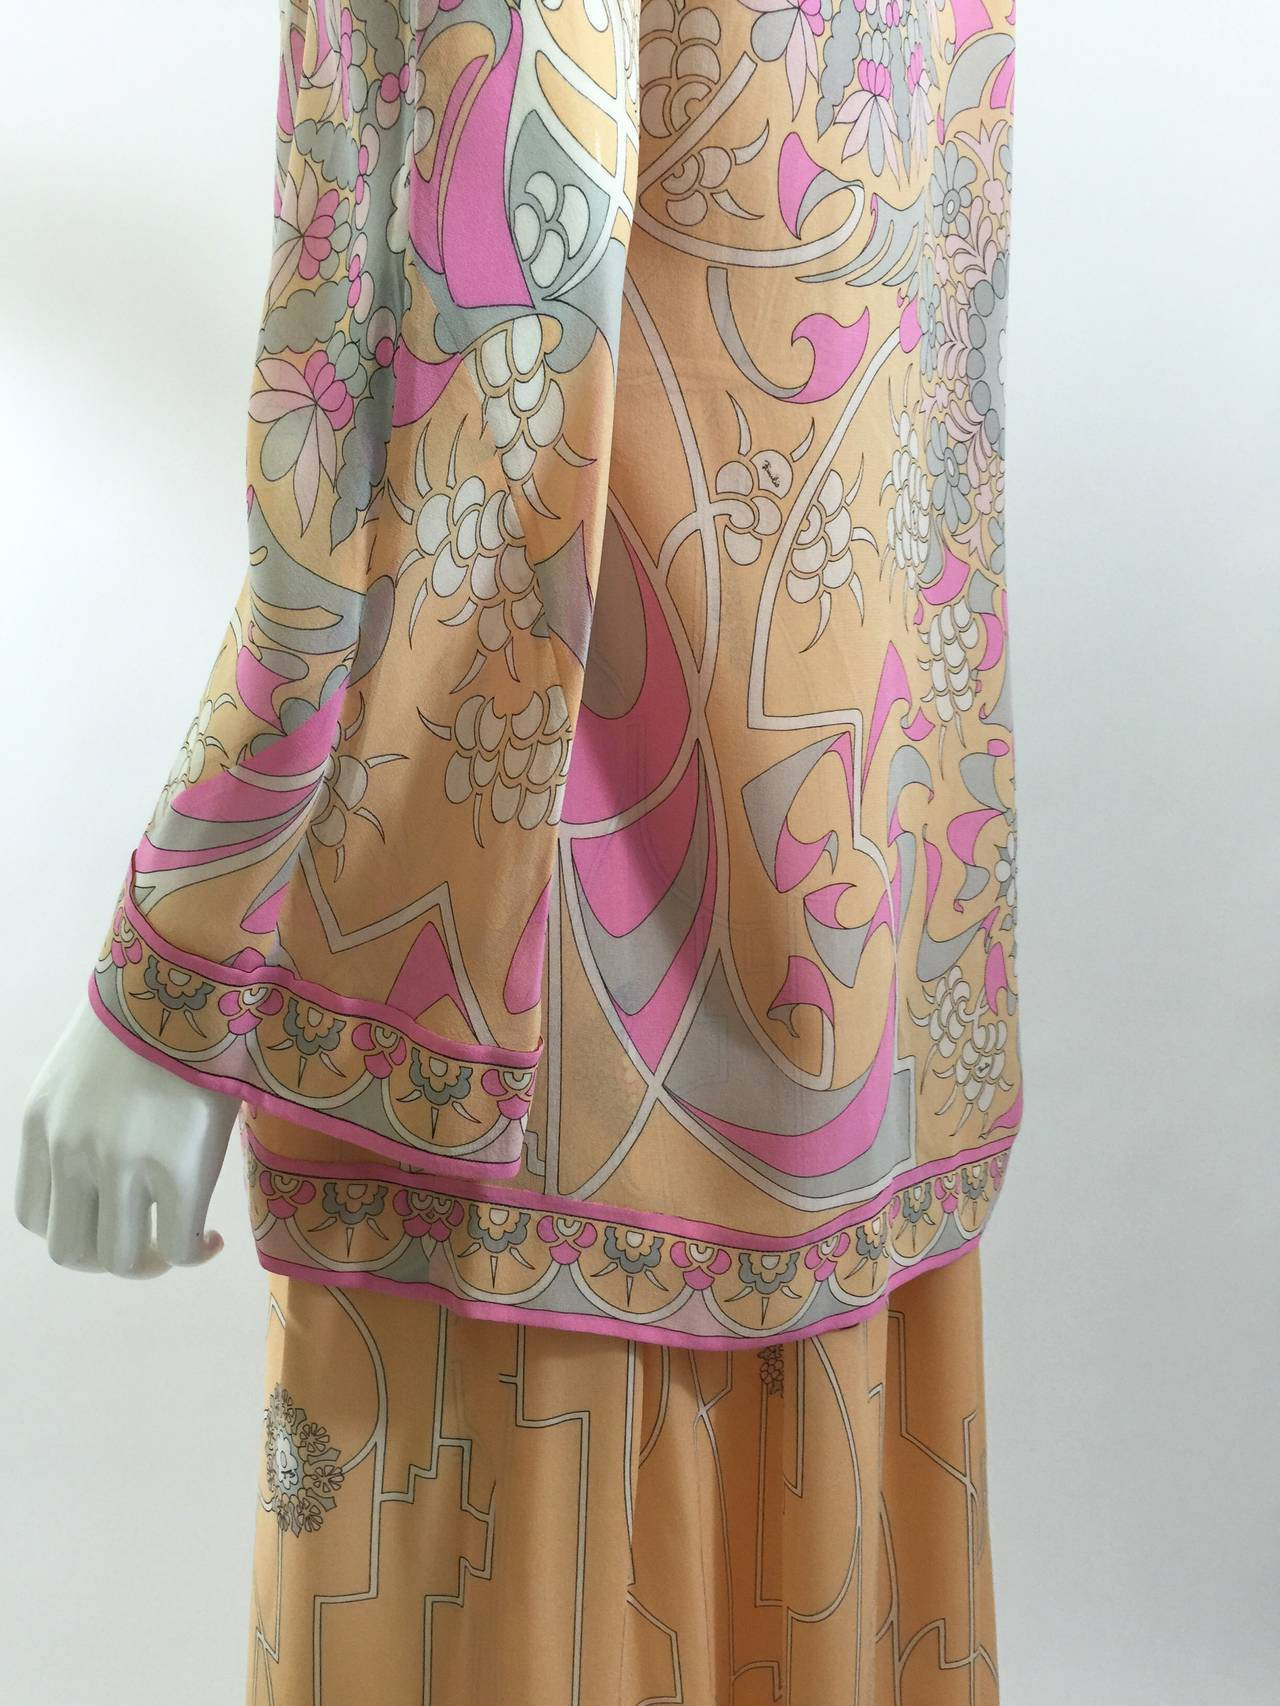 Ethereal 1960'S Emilio Pucci Vintage Silk Dress & Jacket Set Vintage w/ Tags In Excellent Condition For Sale In Boca Raton, FL